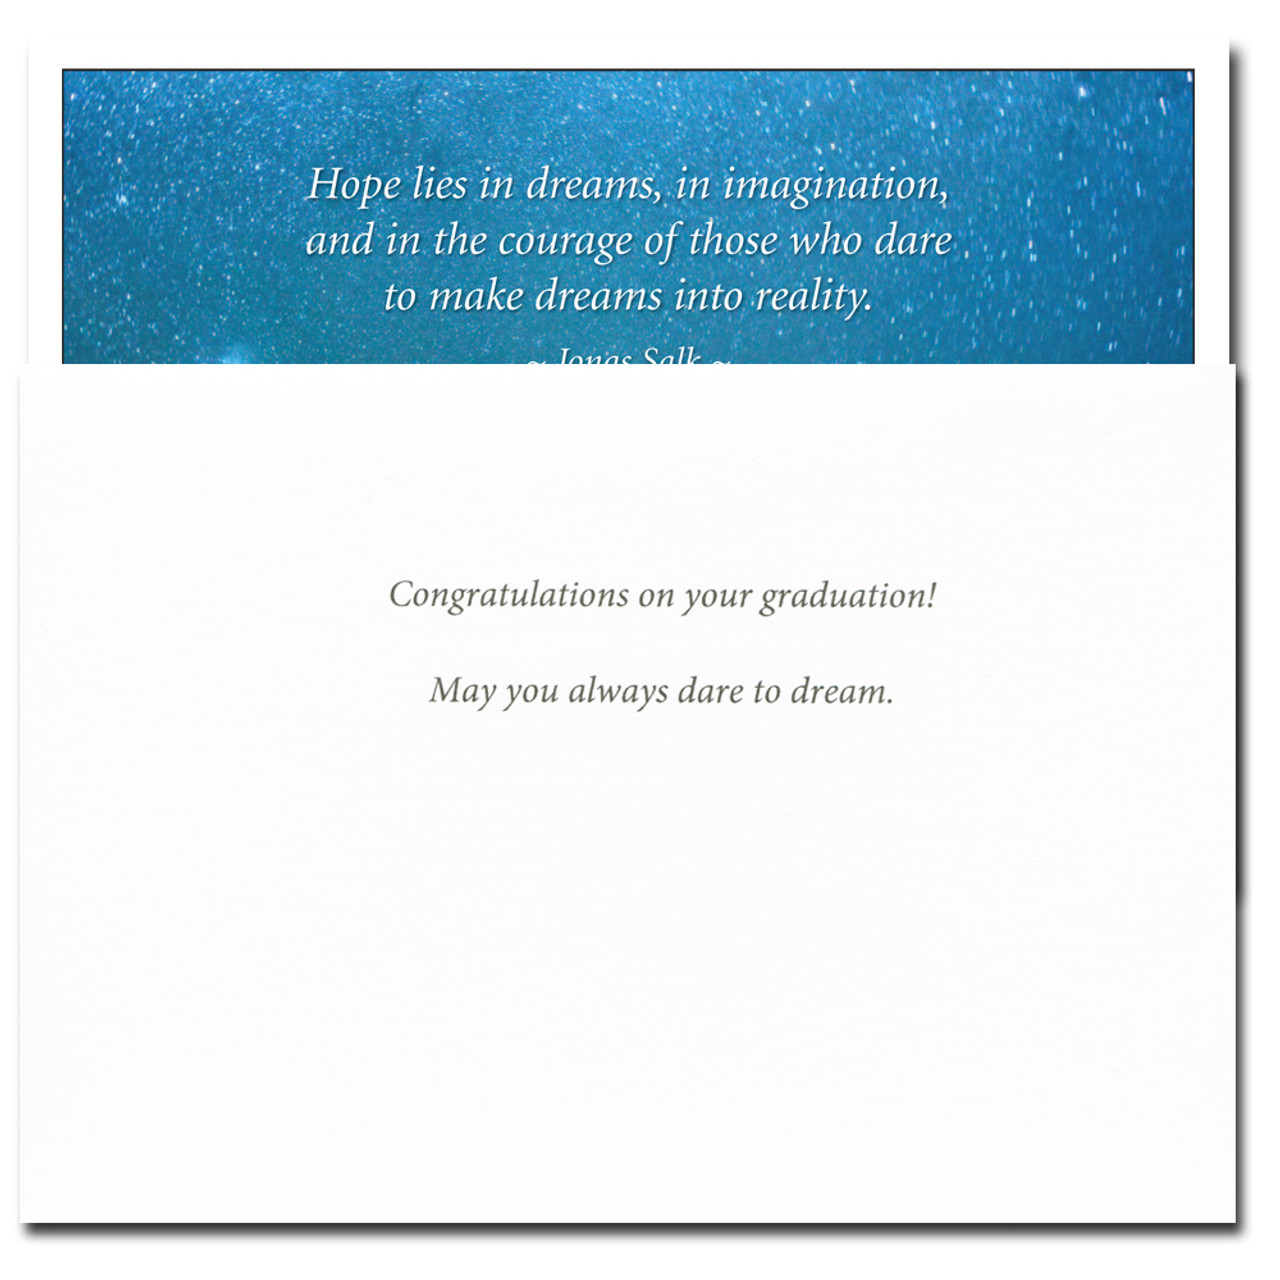 Inside of Beacon Congratulations Card reads: Congratulations on your graduation!  May you always dare to dream